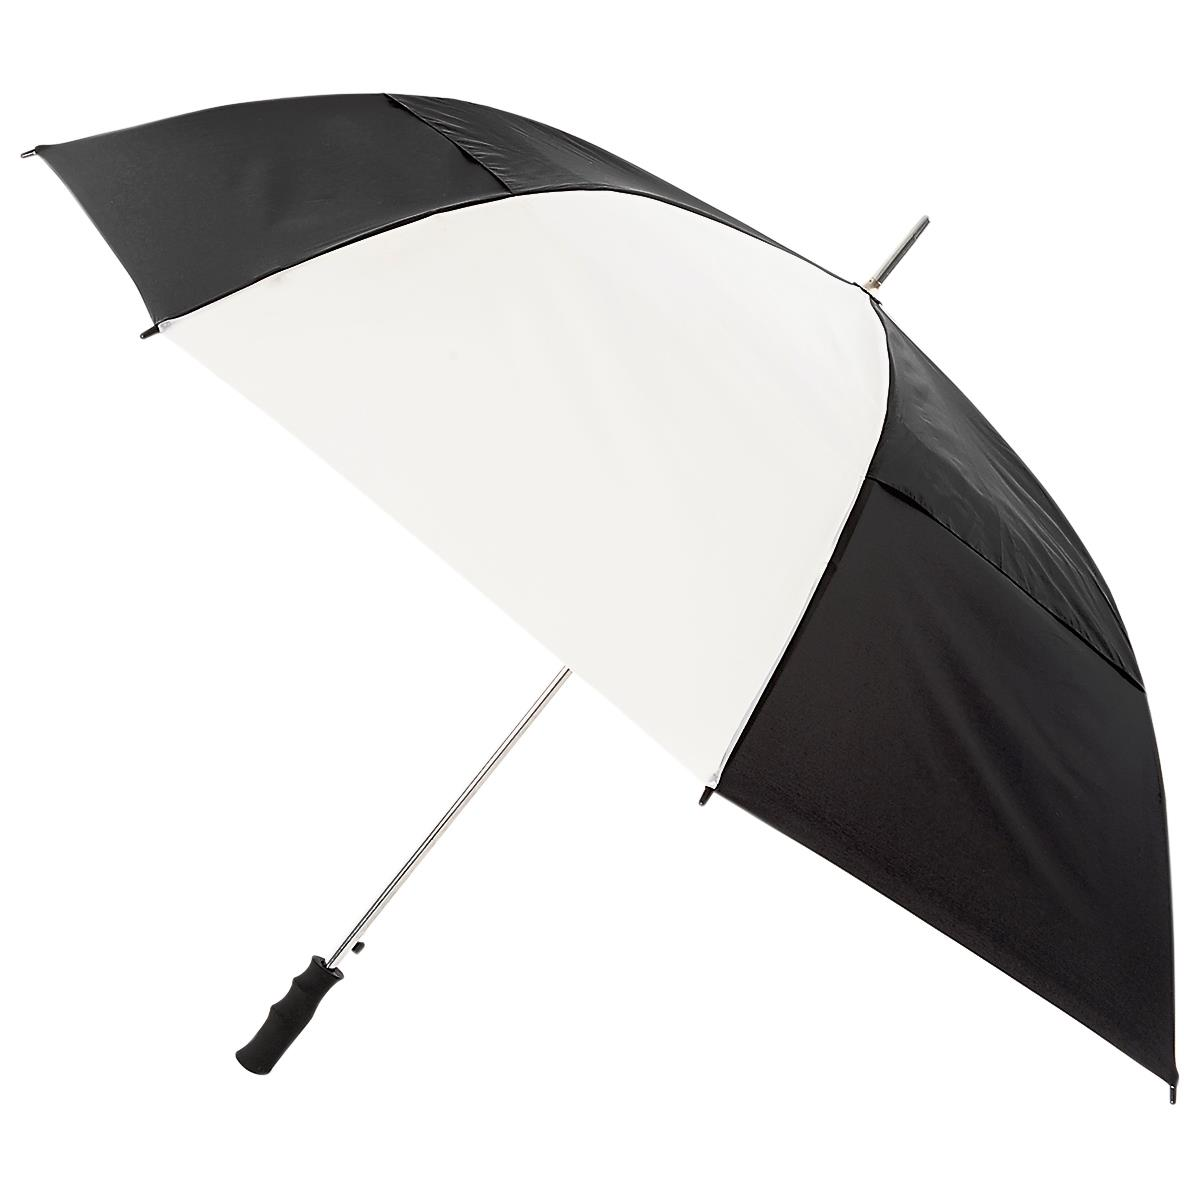 totes Auto Open Windproof Double Canopy Umbrella Black u0026 White  sc 1 st  totes ISOTONER & totes Auto Open Windproof Double Canopy Umbrella Black u0026 White ...